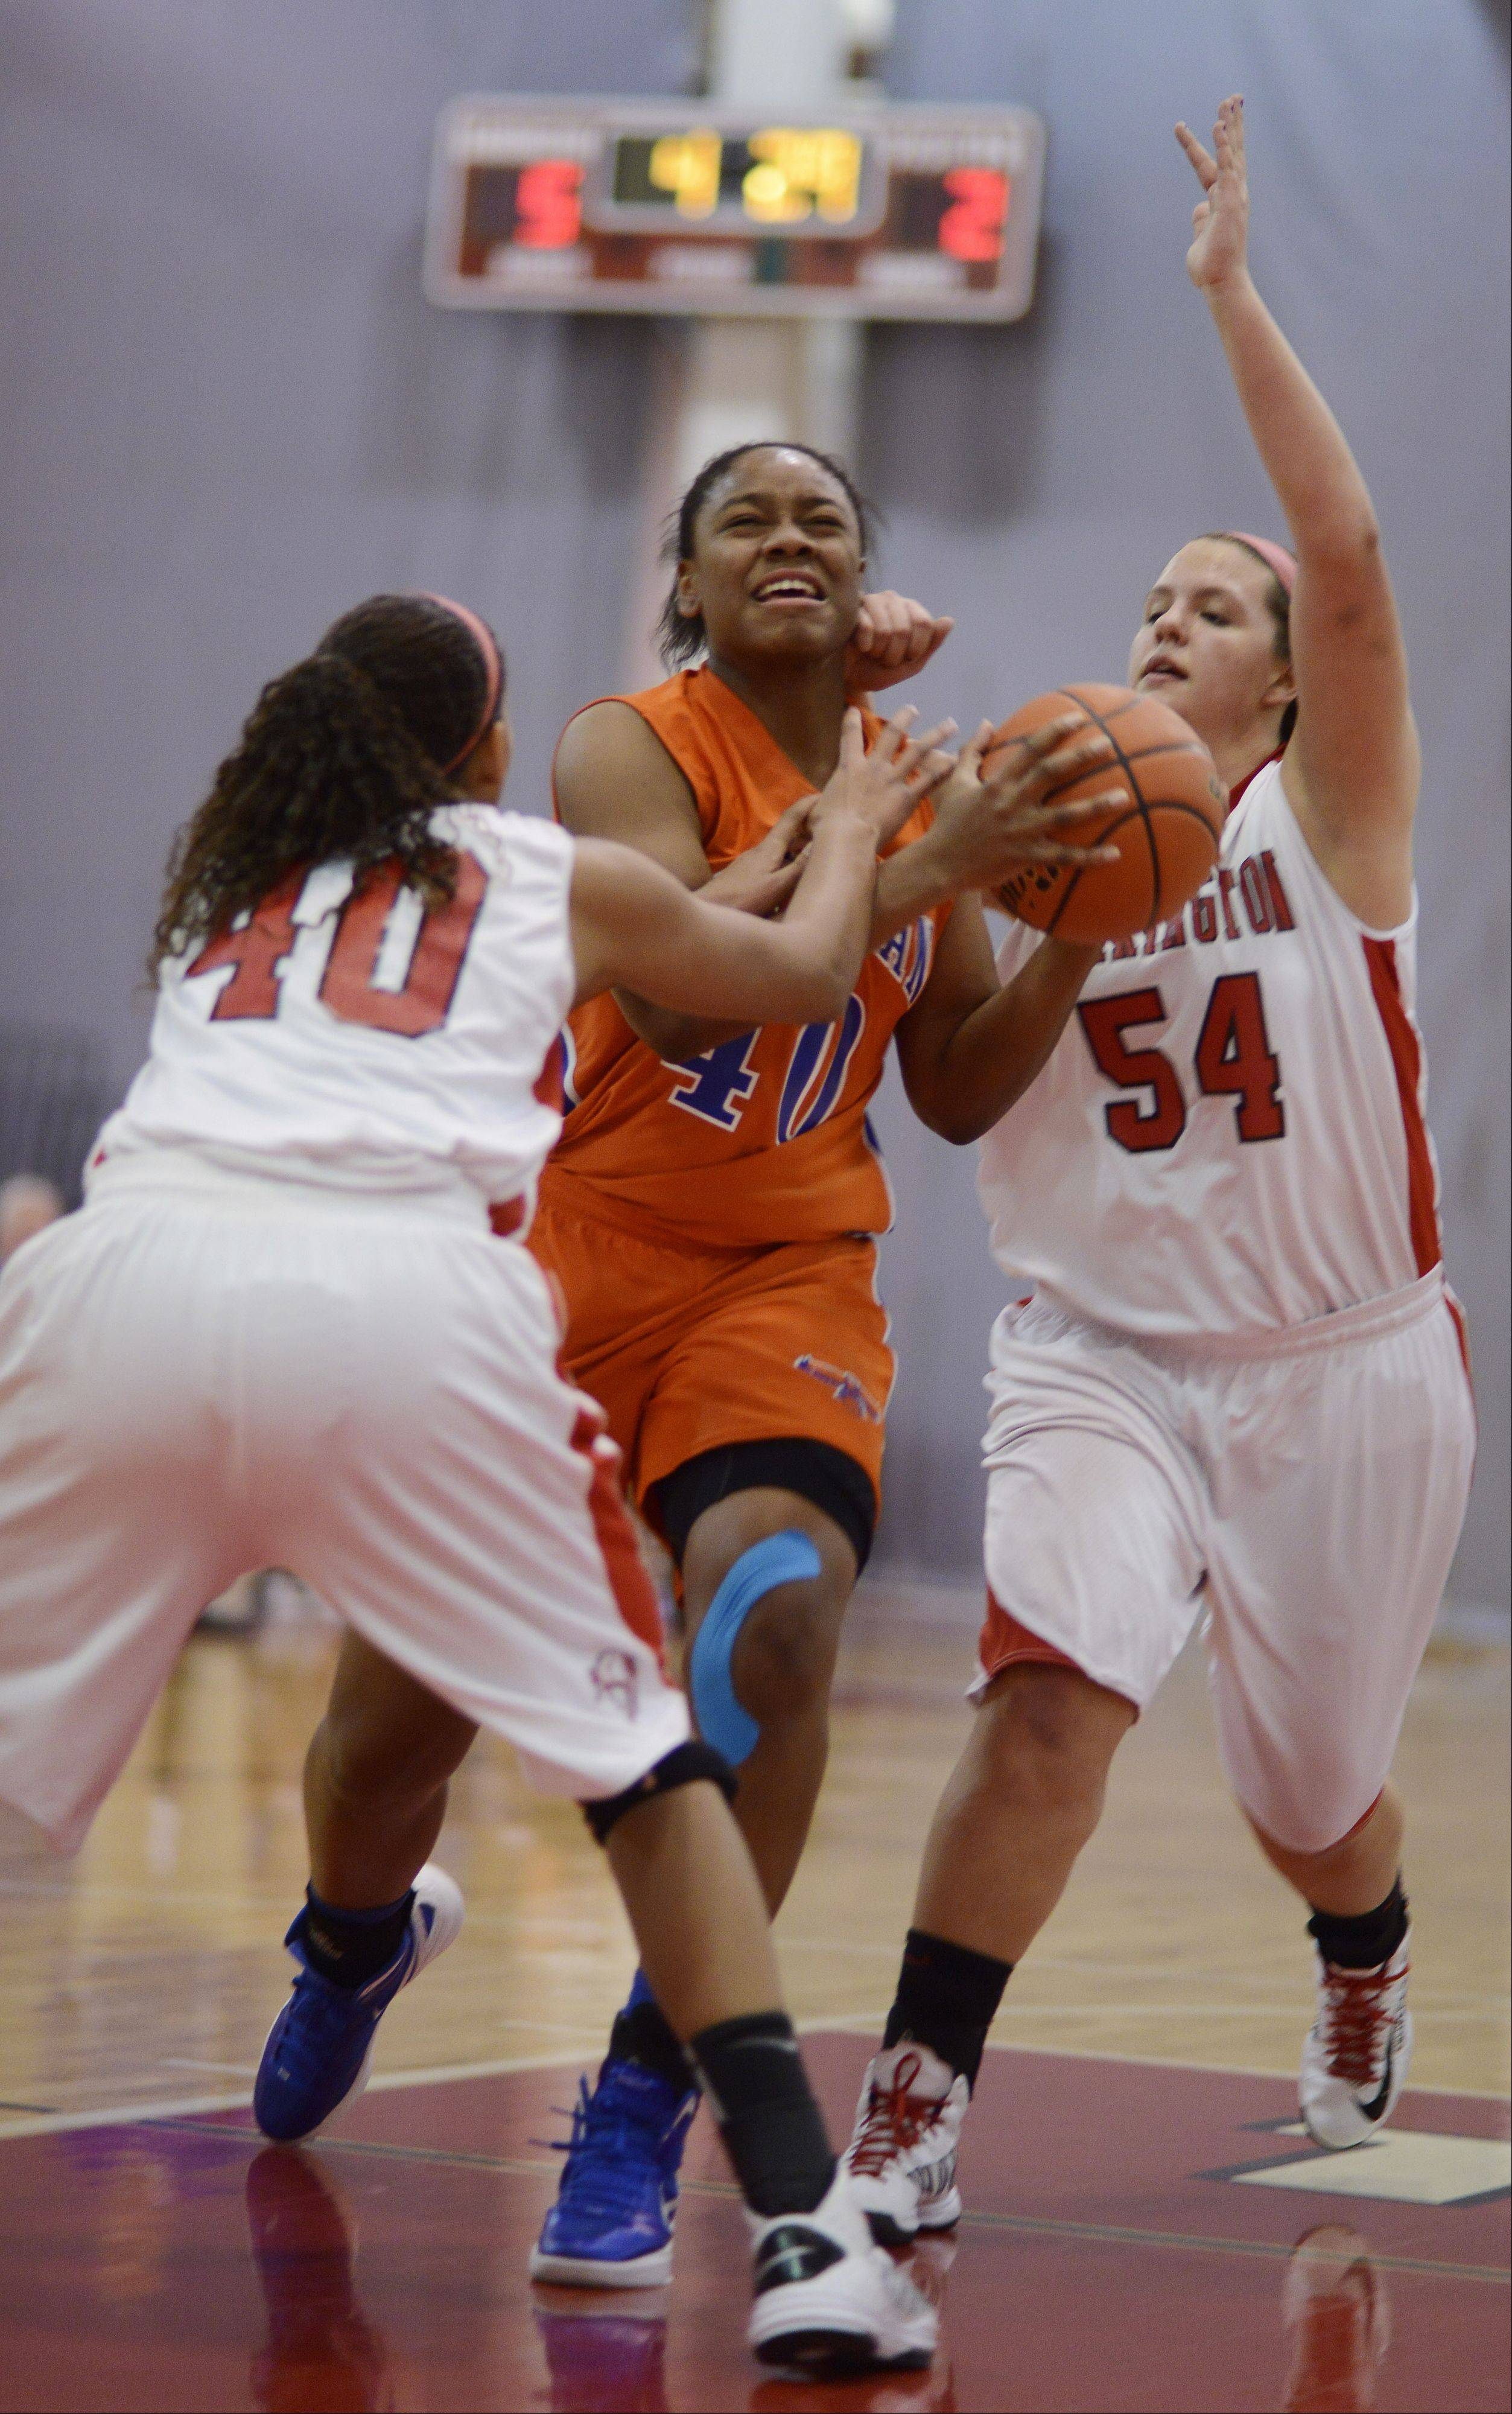 Hoffman Estates' Destinee Young, middle, draws contact as she drives to the basket against Barrington's Bryana Hopkins, left, and Alexa Resch during Wednesday's game.